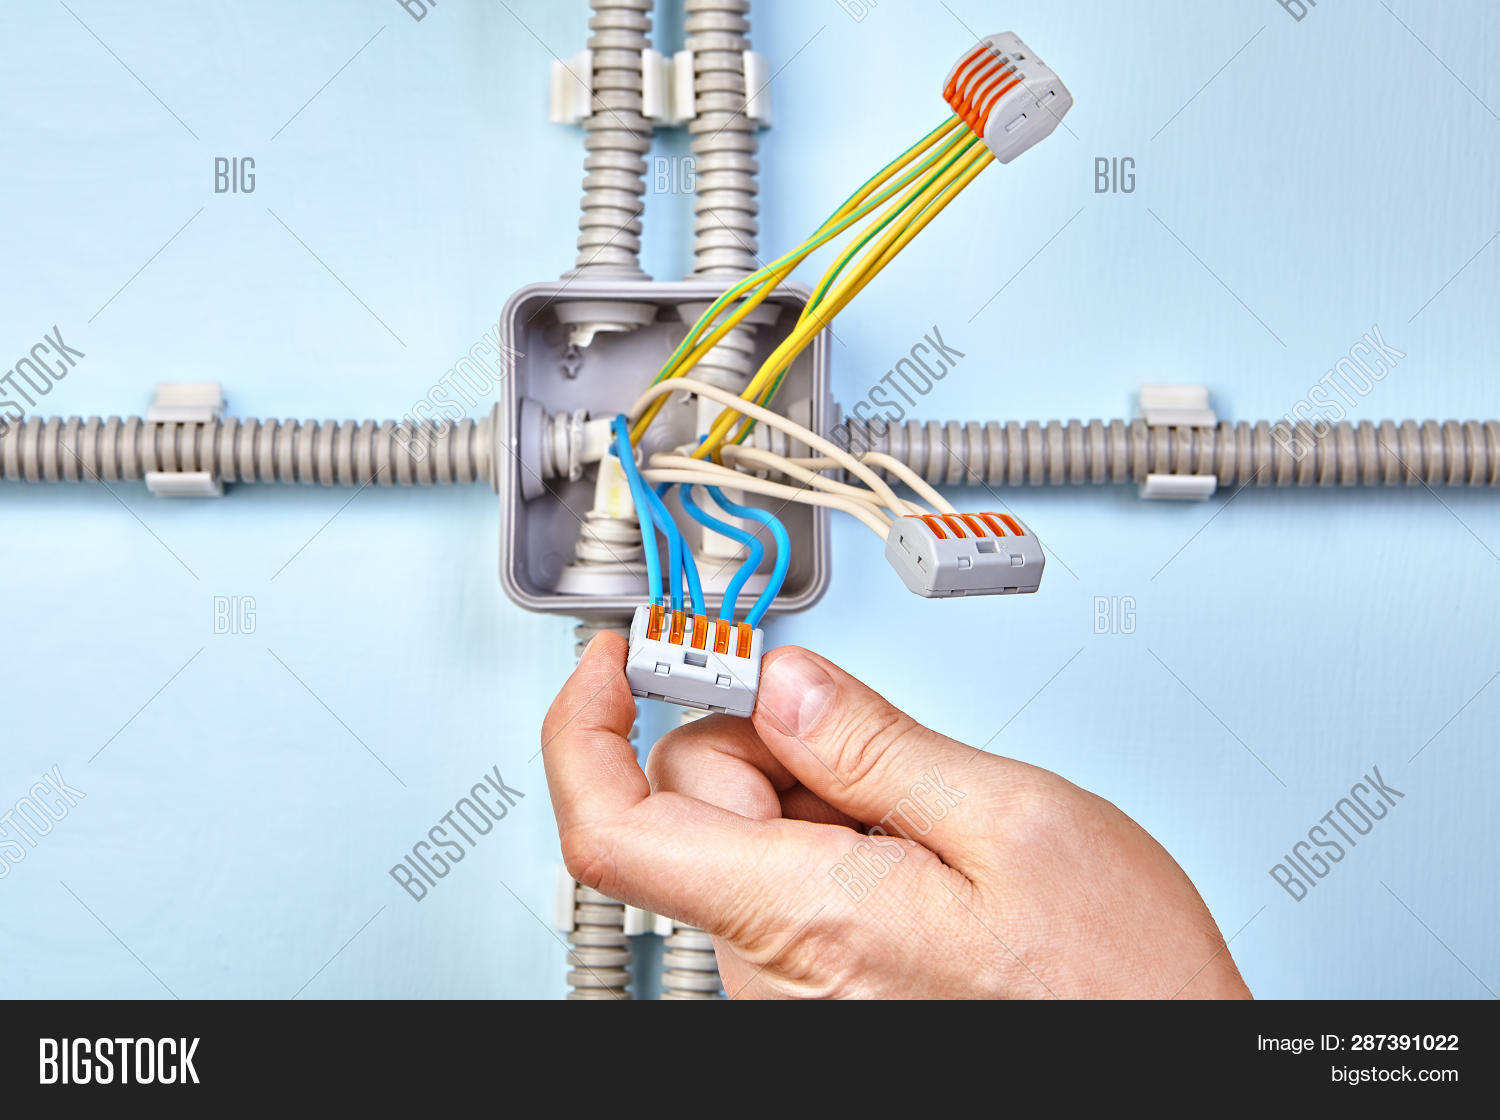 Junction Box Image & Photo (Free Trial) | Bigstock on earthing system, free electrical blueprints, power cable, home wiring, ac power plugs and sockets, national electrical code, golf cart schematics or diagrams, electrical wiring in north america, free lighting diagrams, electrical conduit, ring circuit, free electrical symbols, light switch, free harley wiring diagram, circuit diagram, free hvac diagrams, free automotive electrical diagrams, free ford tractor diagrams, distribution board, mains electricity by country, free electrician logos, free online basic blueprint reading, junction box, three-phase electric power, knob and tube wiring, free schematic diagram, basic electrical schematic diagrams, ground and neutral, elevator controls diagrams, ezgo golf cart parts diagrams, free electrical manuals, free electrical cad drawings, free circuit diagrams, free plumbing diagrams, free bathroom diagrams, free electrical schematics, circuit breaker, electrical system design,